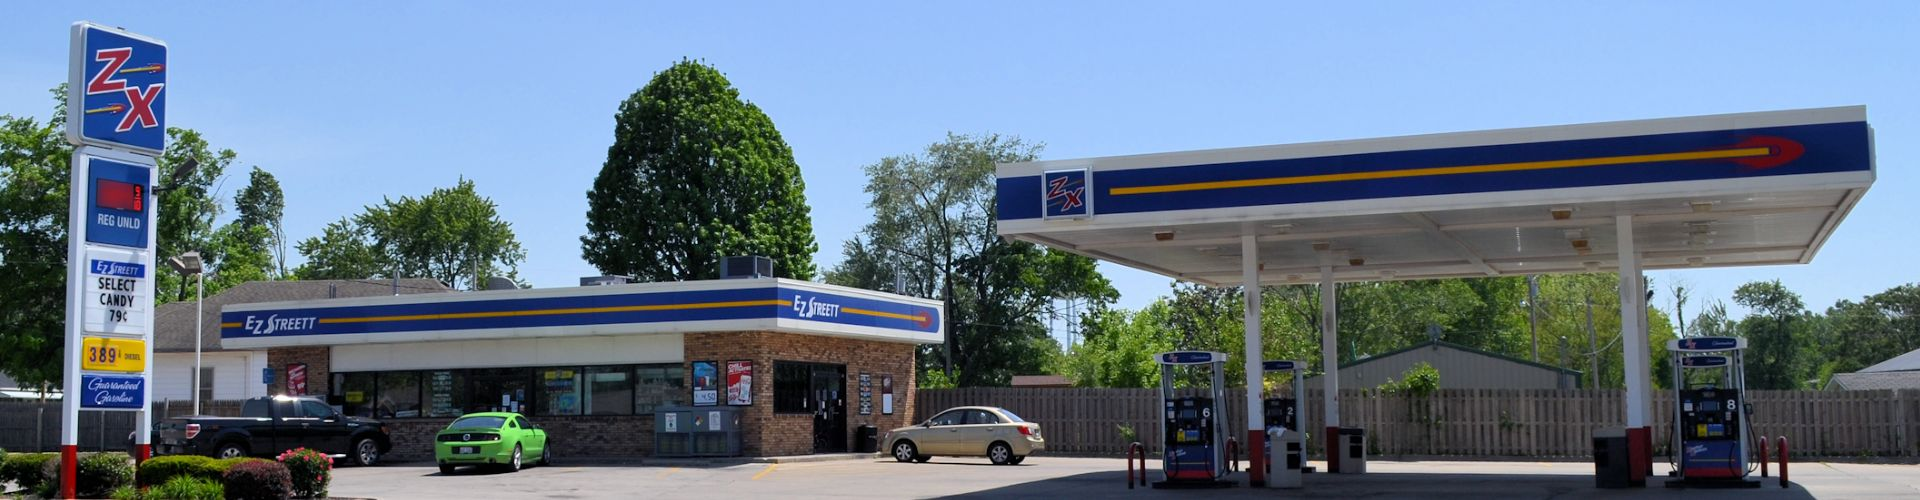 zx-gas-station-store-illinois